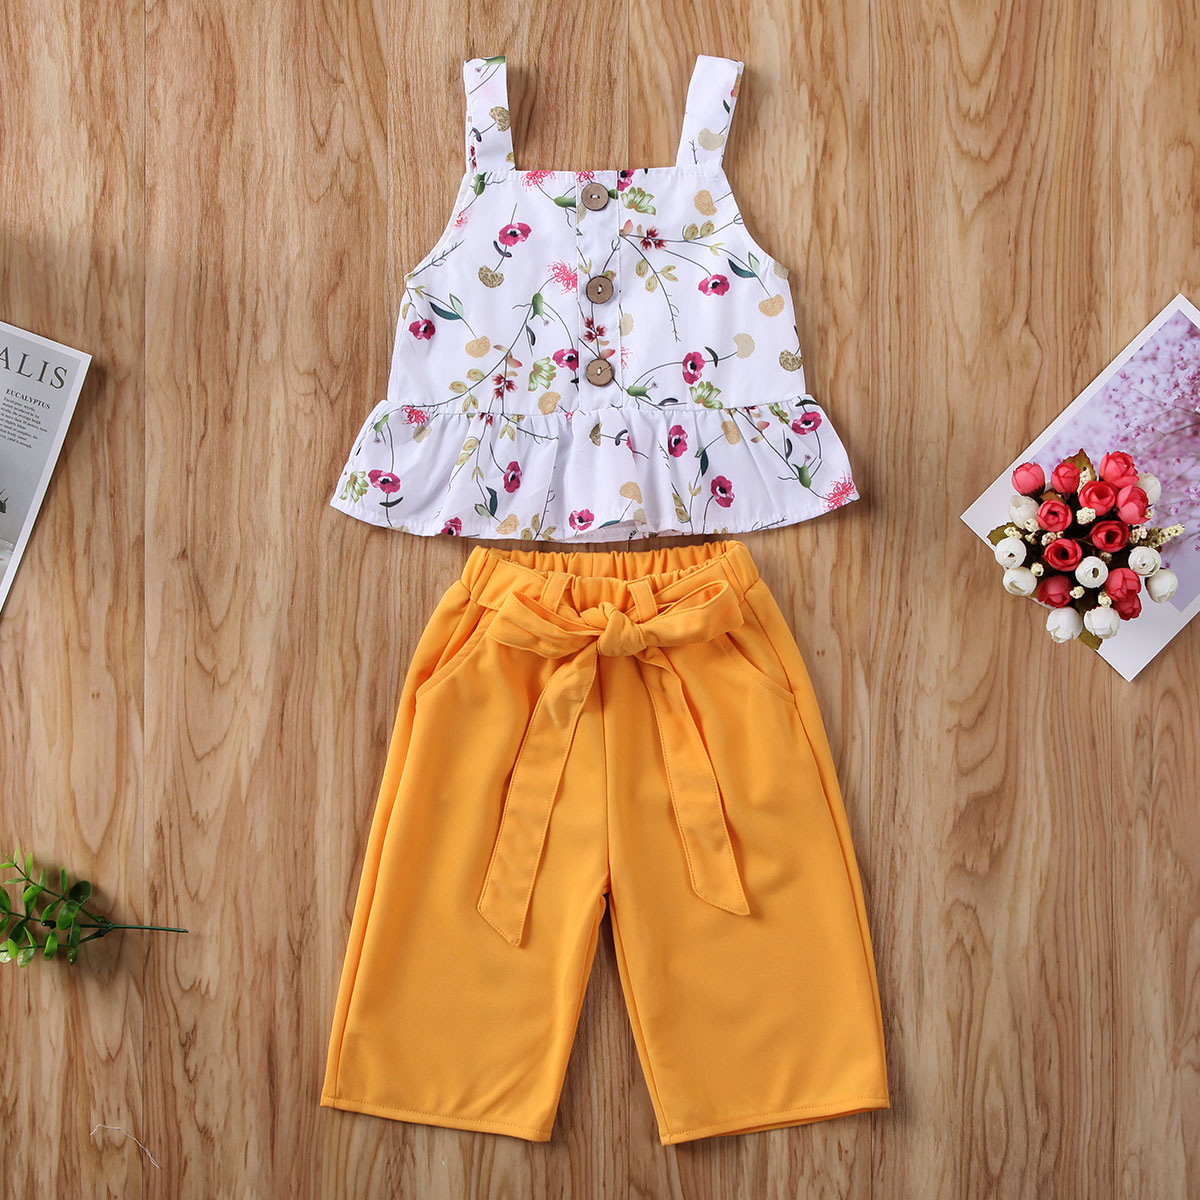 Pudcoco Newborn Baby Girl Clothes Flower Print Sleeveless Strap Ruffle Crop Tops Long Pants 2Pcs Outfits Clothes Summer